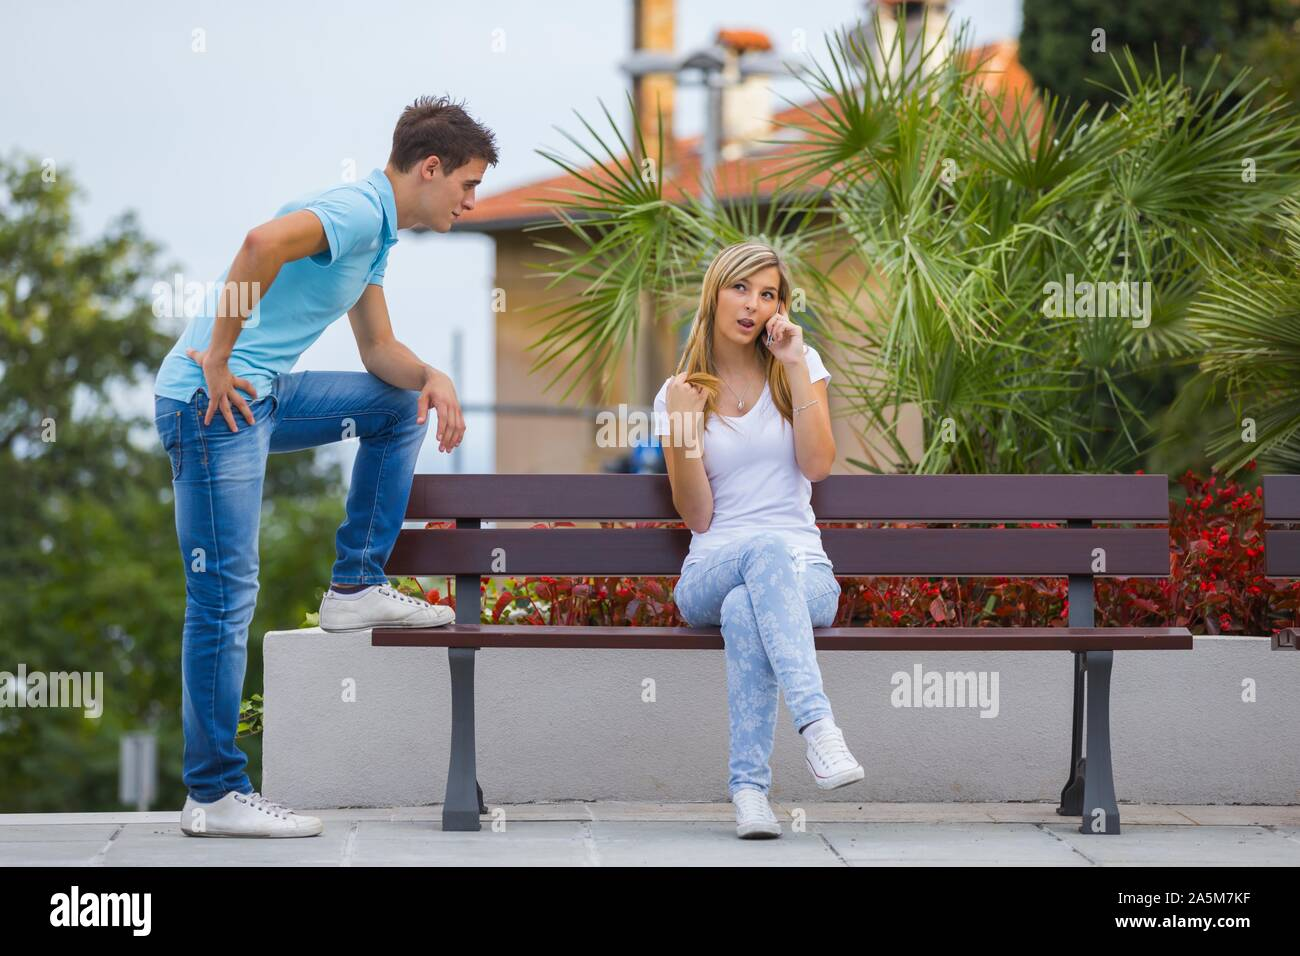 Endless chat female teenager long lengthy neverending talking on smartphone while her boyfriend friend waits nervously Stock Photo